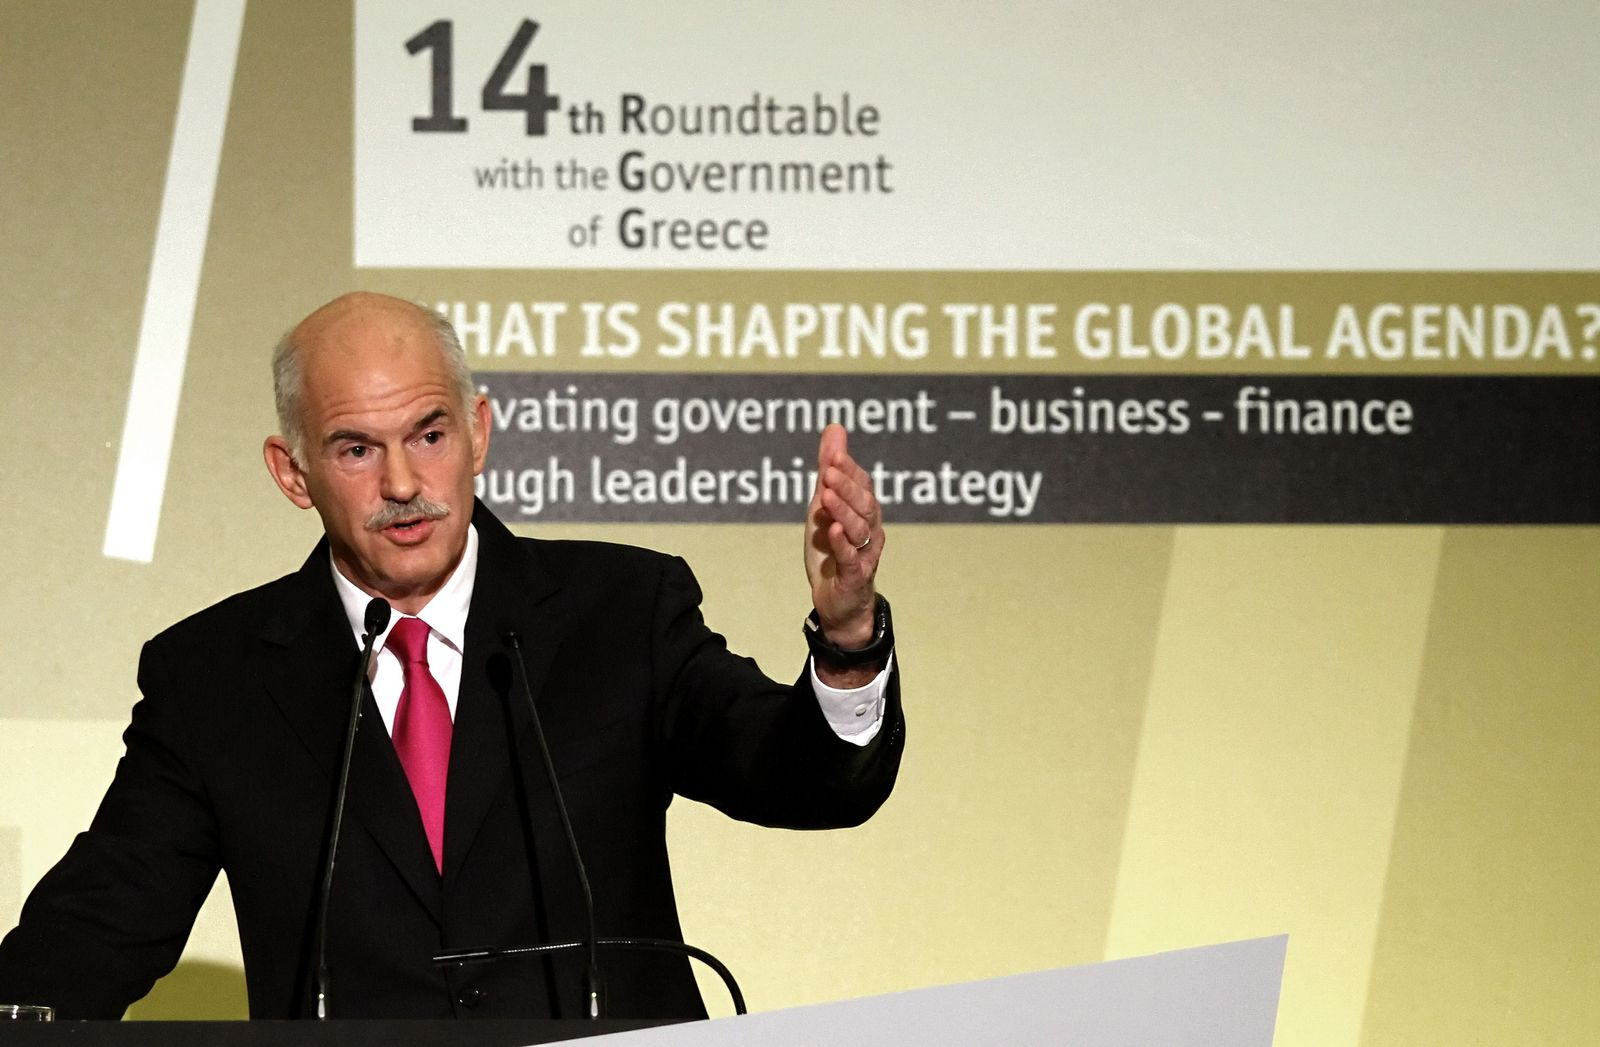 Papandreou/ Economist conference